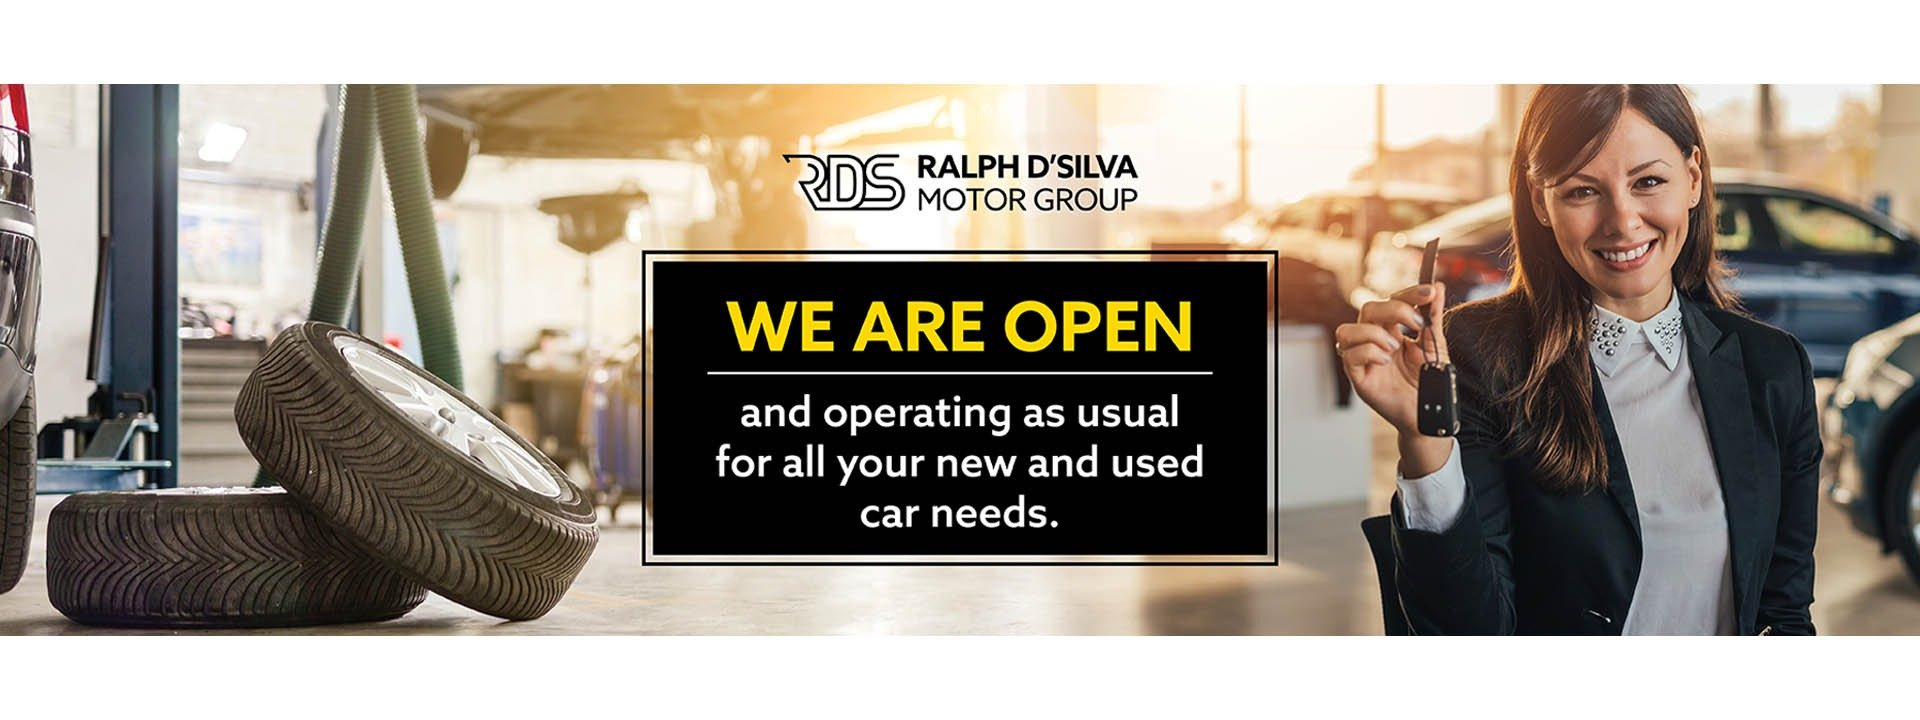 RDS Hyundai   We are open